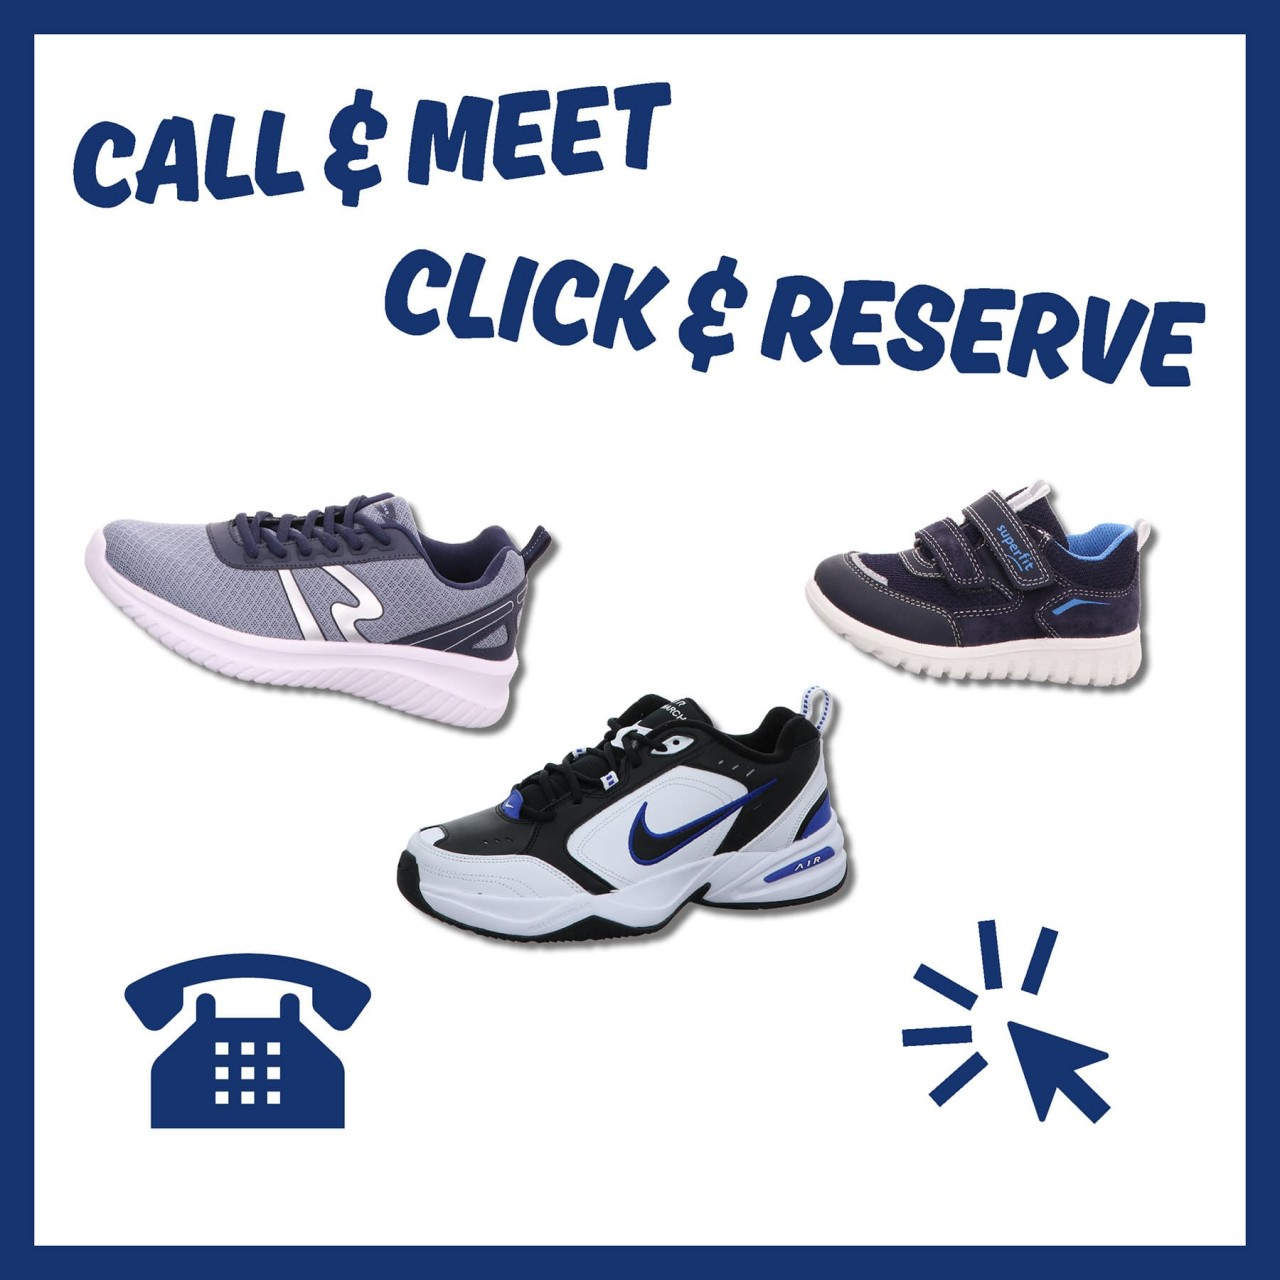 click-and-reserve-call-and-meet